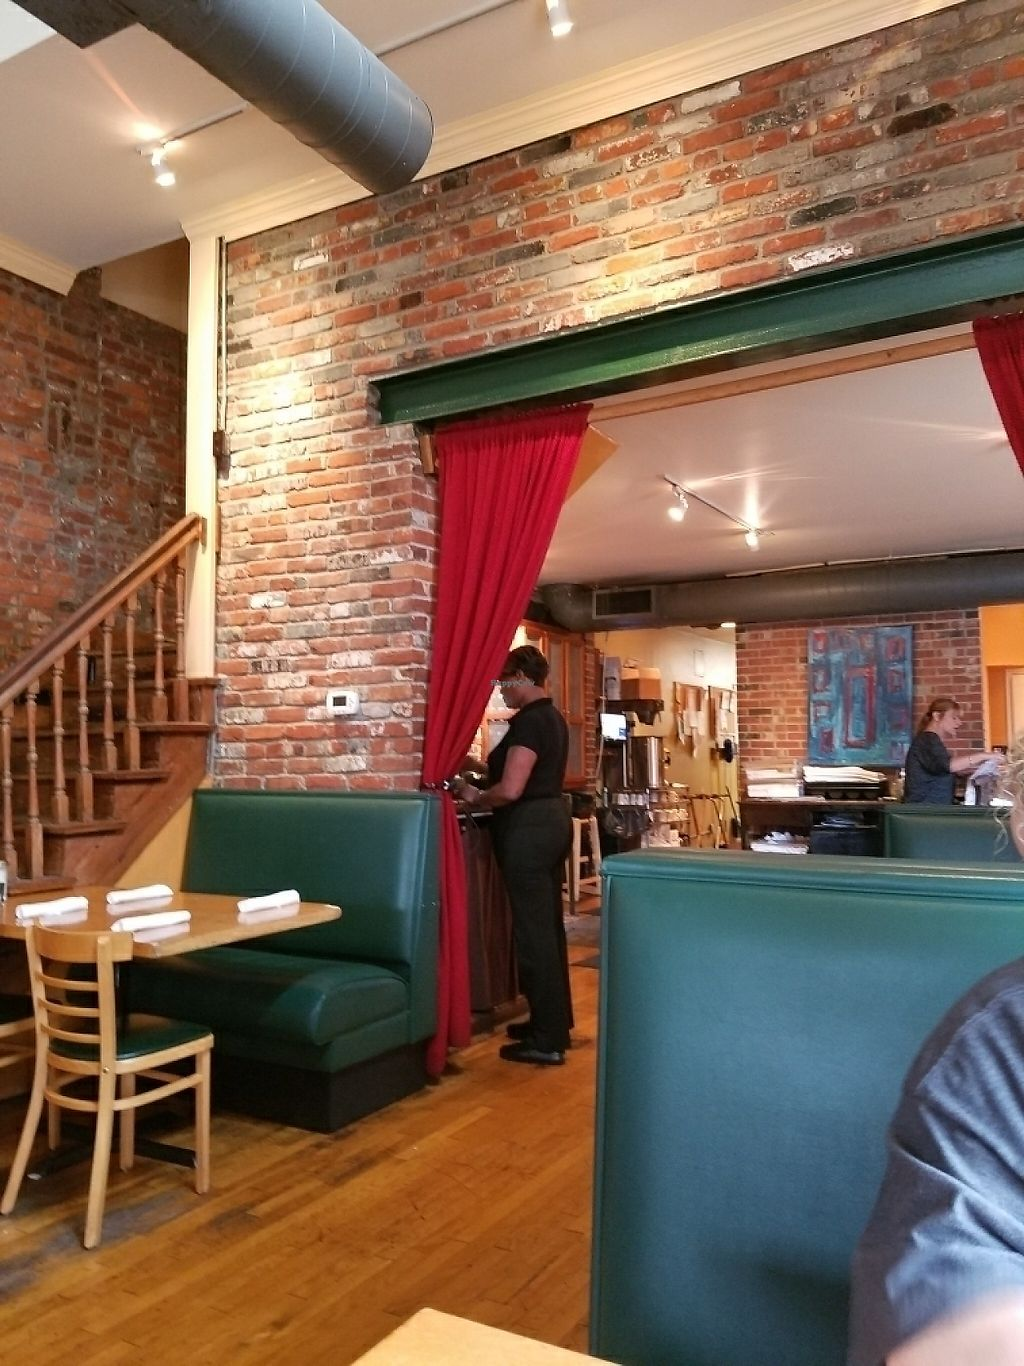 """Photo of North End Cafe  by <a href=""""/members/profile/jenicamb"""">jenicamb</a> <br/>Very cute seating area <br/> May 29, 2017  - <a href='/contact/abuse/image/5736/263932'>Report</a>"""